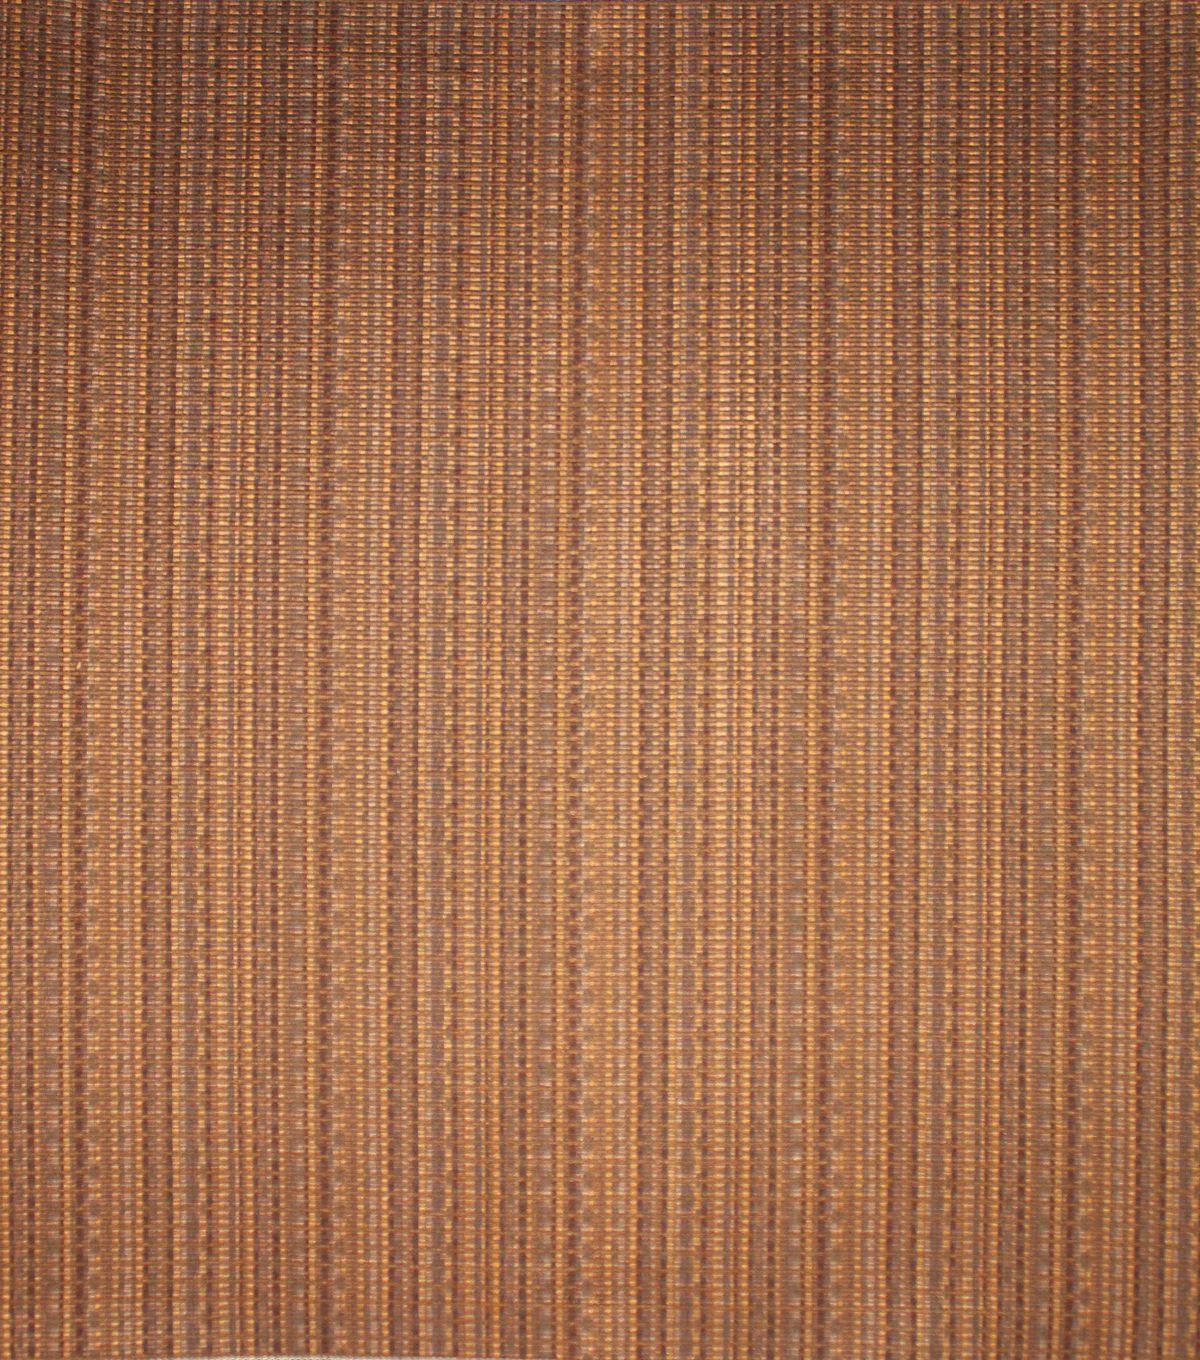 Home Decor 8\u0022x8\u0022 Fabric Swatch-Upholstery Fabric Barrow M8877-5907 Clove